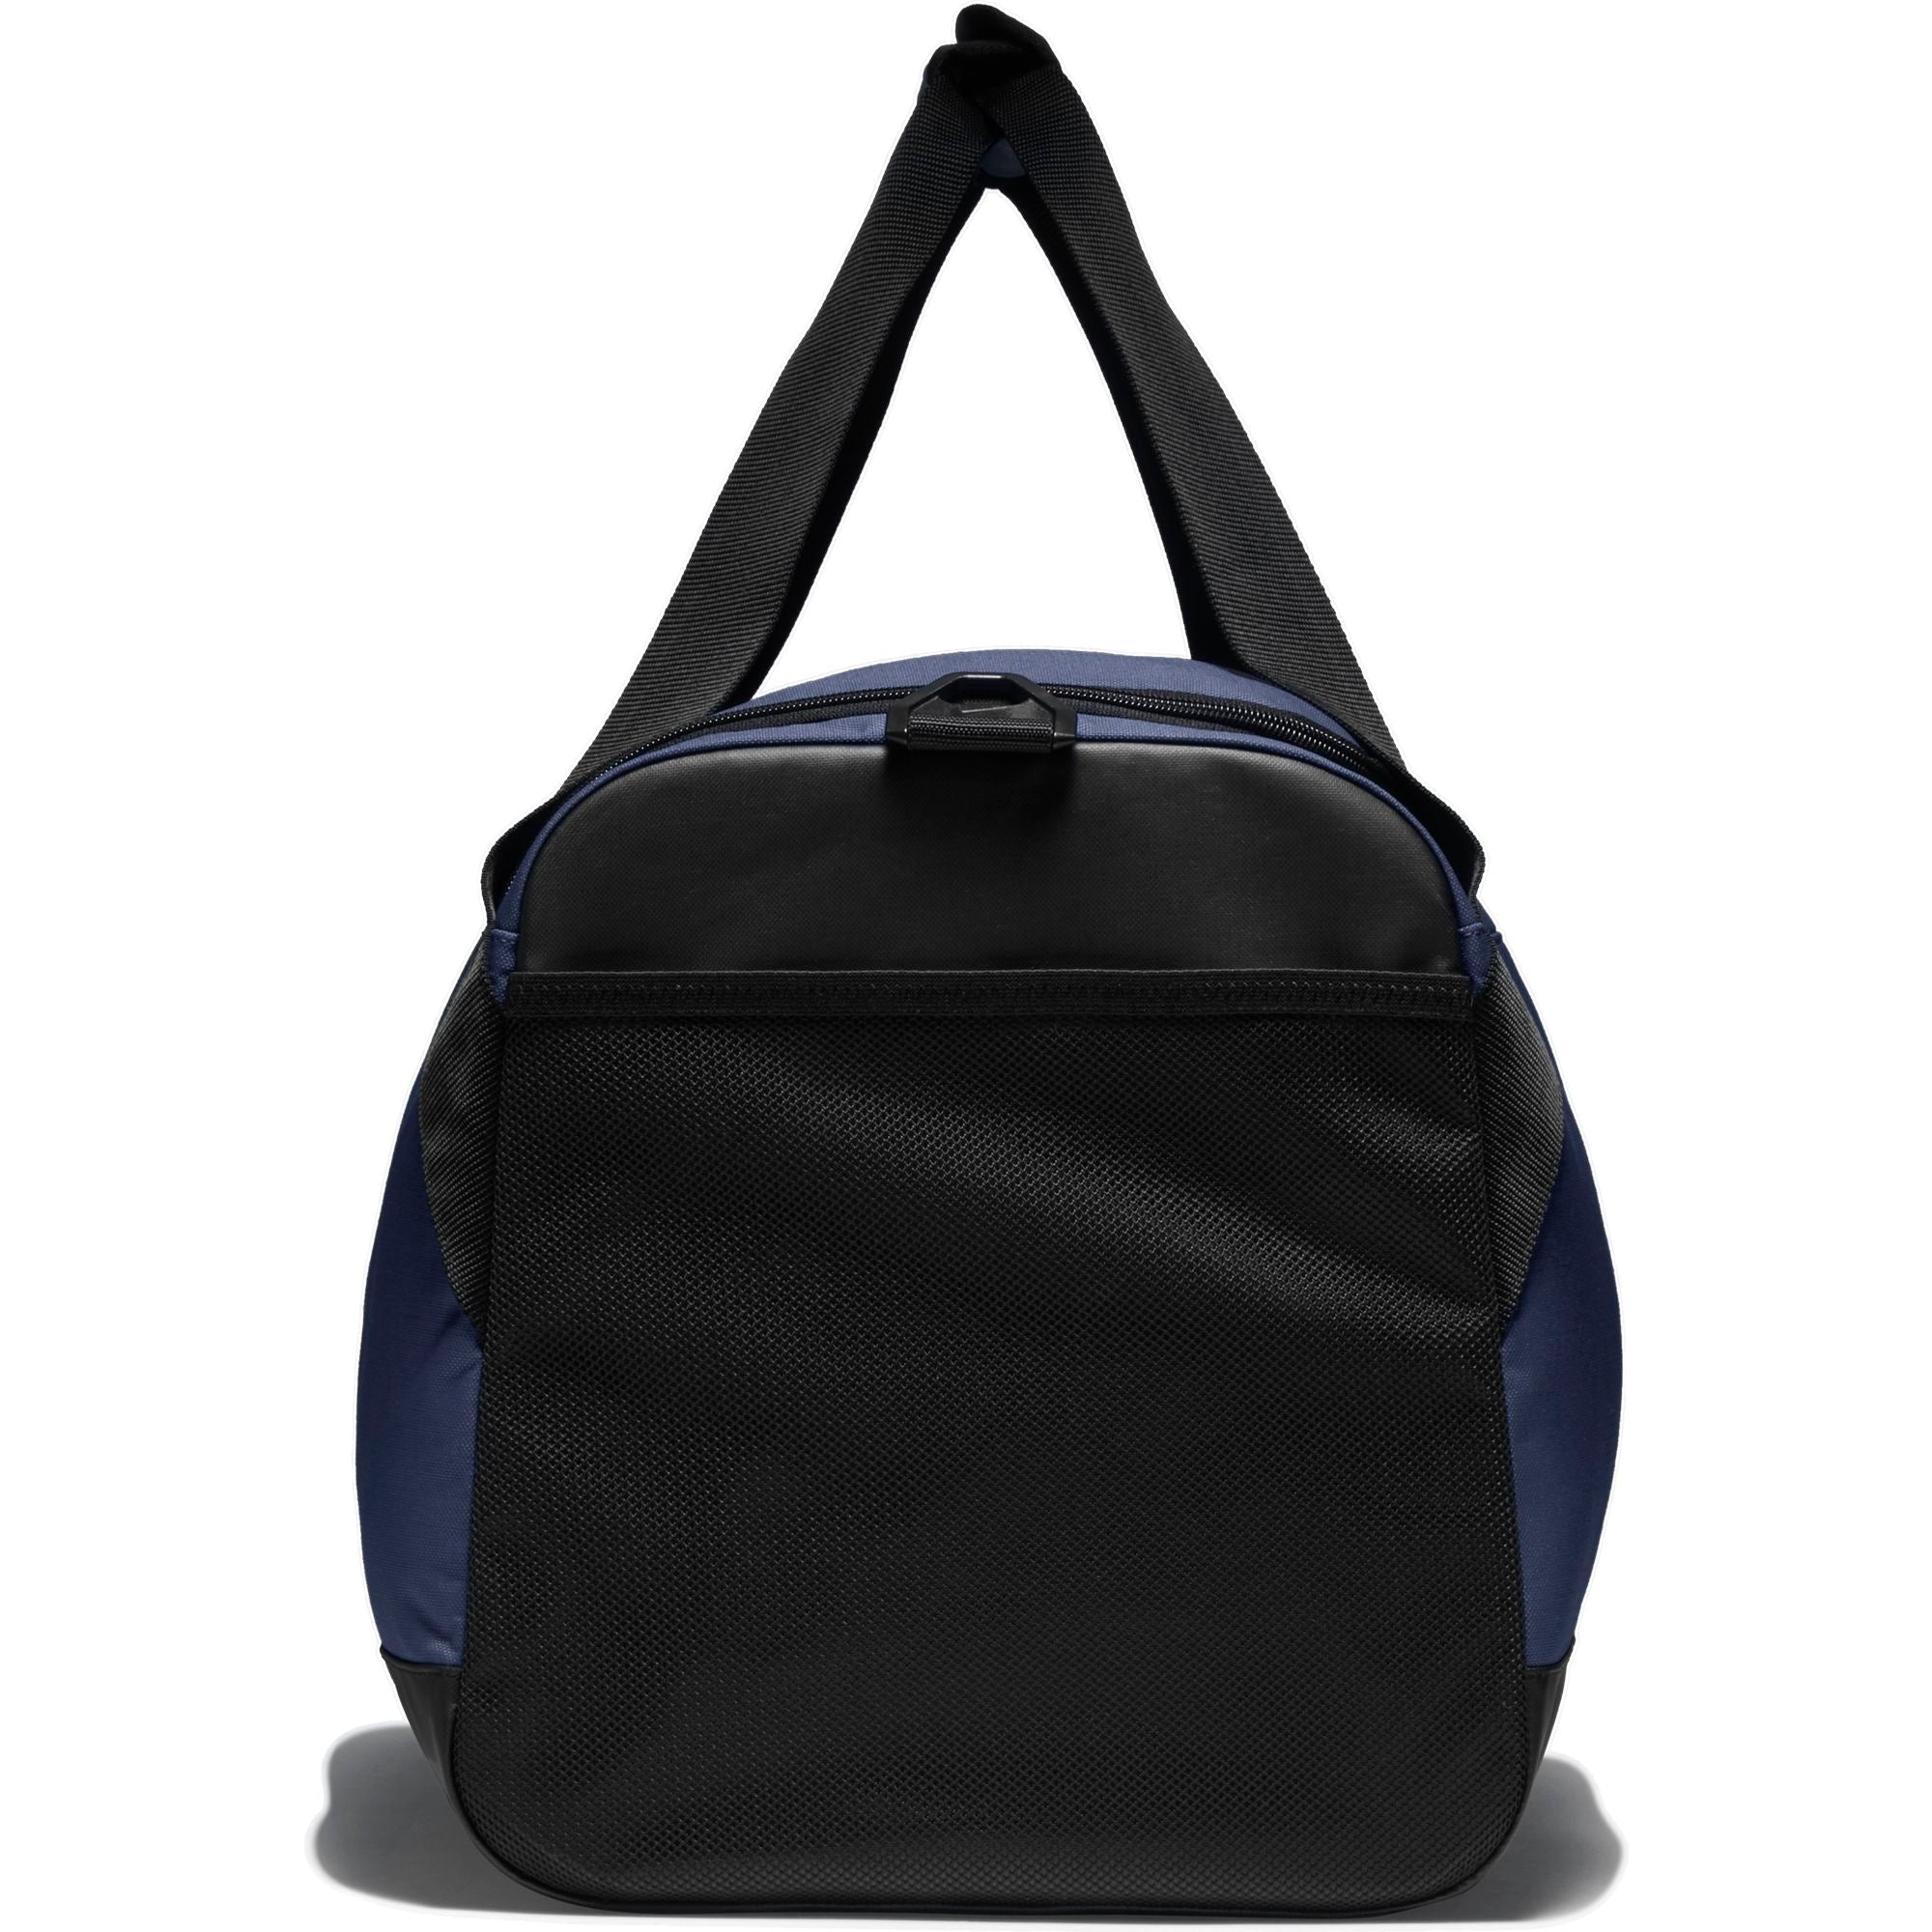 Nike Brasilia Training Duffel Bag (Medium) - Midnight Navy/Black/White